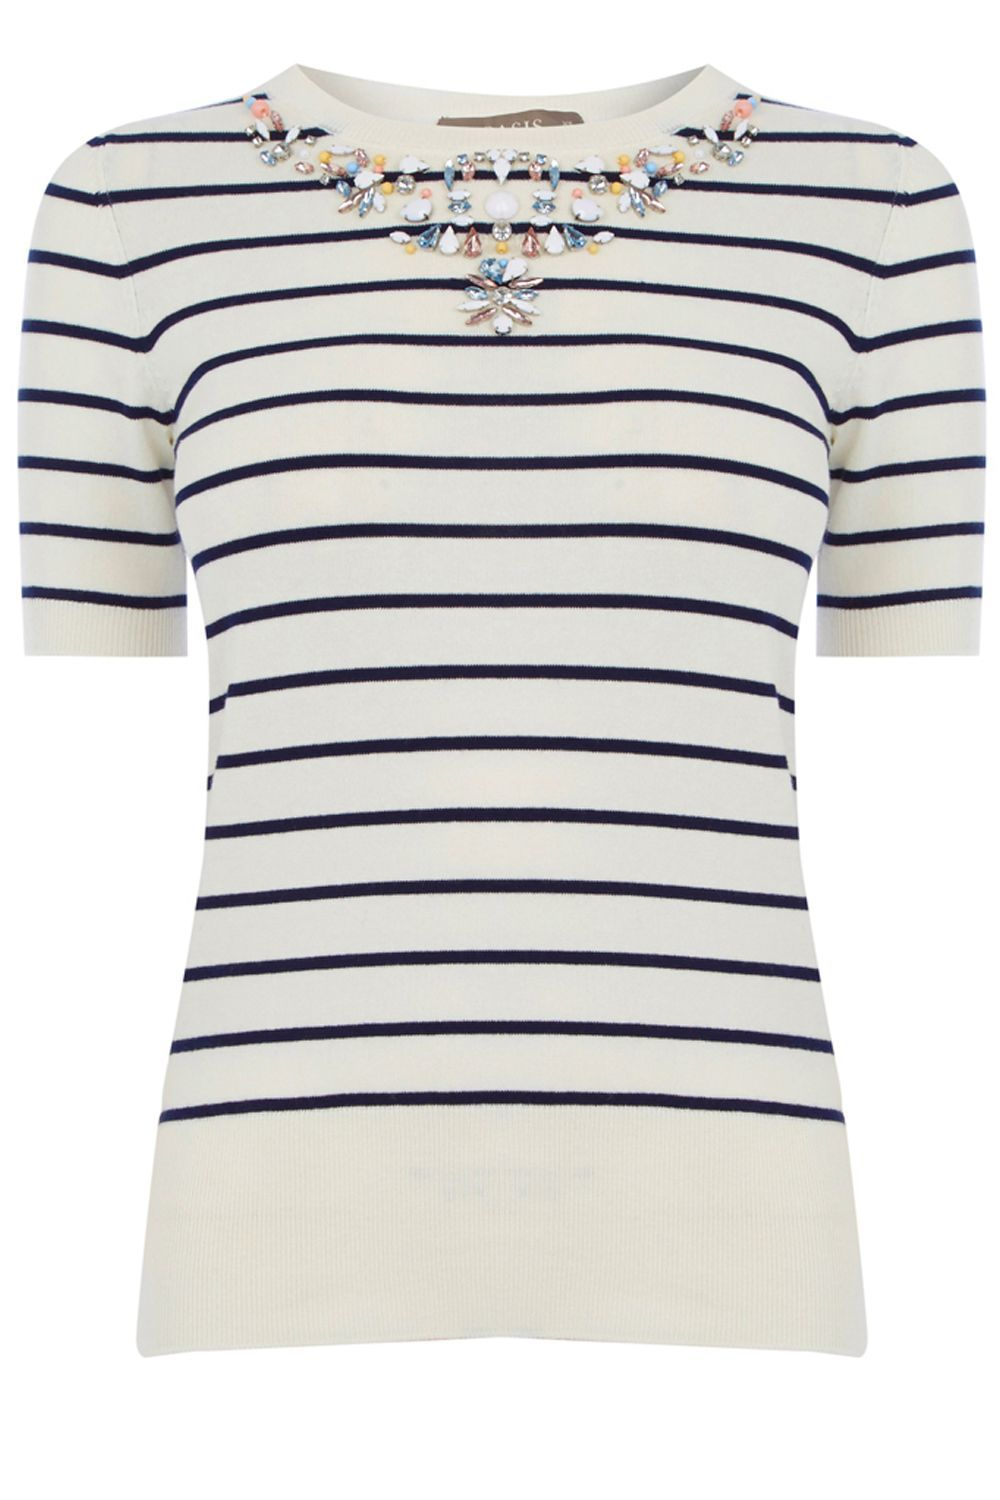 Embellished Stripe Knit, Multi Coloured - pattern: horizontal stripes; style: standard; predominant colour: ivory/cream; secondary colour: navy; occasions: casual; length: standard; fibres: cotton - mix; fit: standard fit; neckline: crew; sleeve length: short sleeve; sleeve style: standard; texture group: knits/crochet; pattern type: knitted - fine stitch; embellishment: crystals/glass; multicoloured: multicoloured; season: s/s 2016; wardrobe: highlight; embellishment location: neck